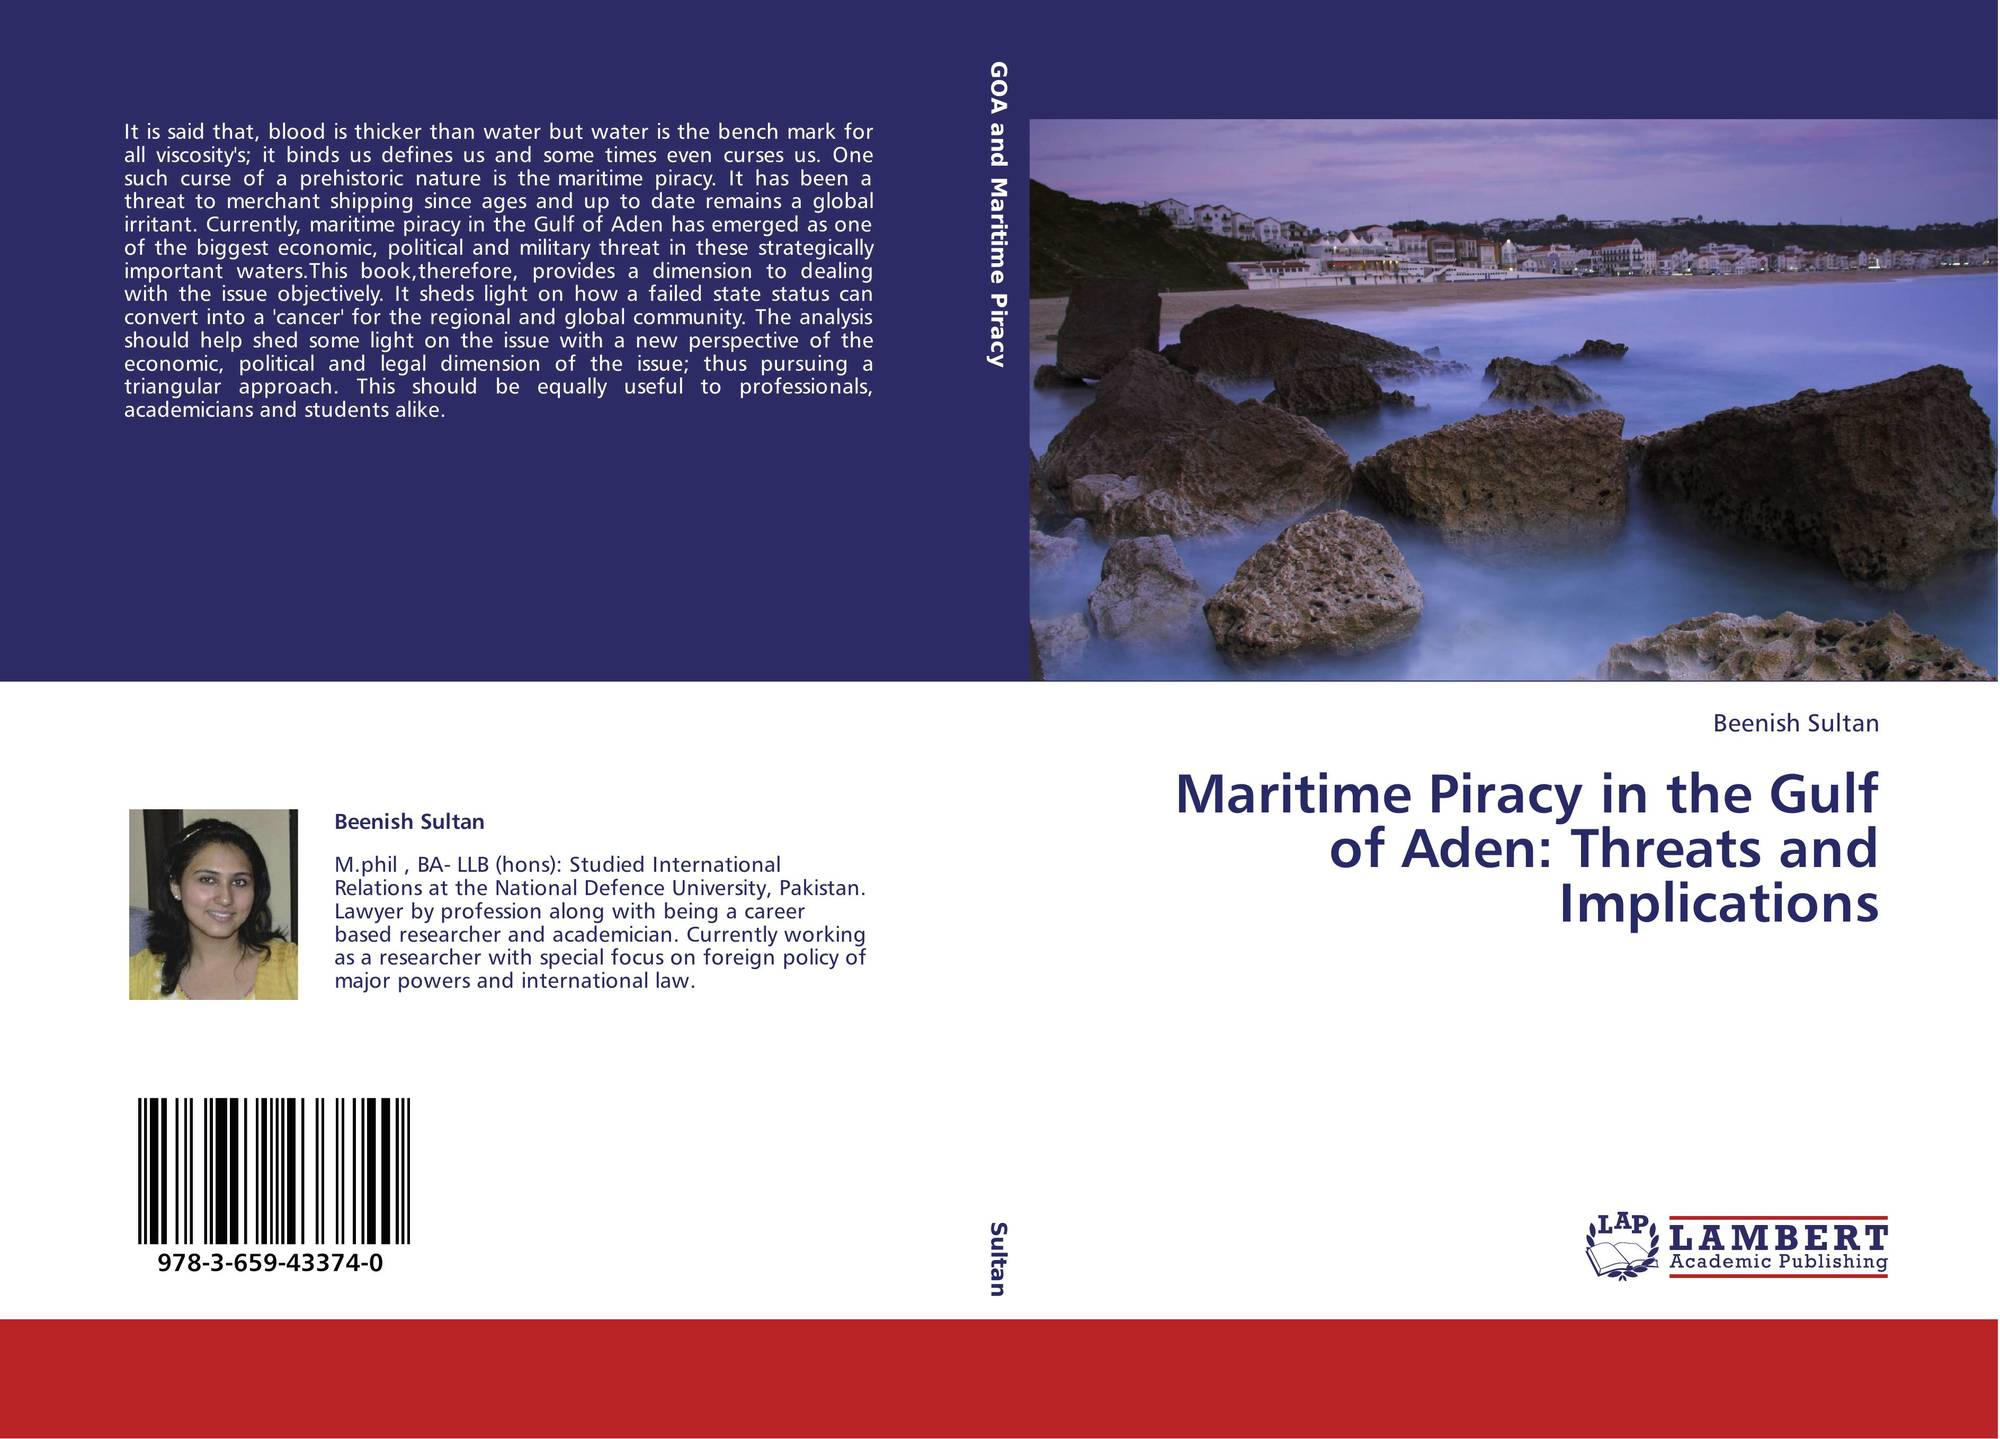 Maritime Piracy in the Gulf of Aden: Threats and